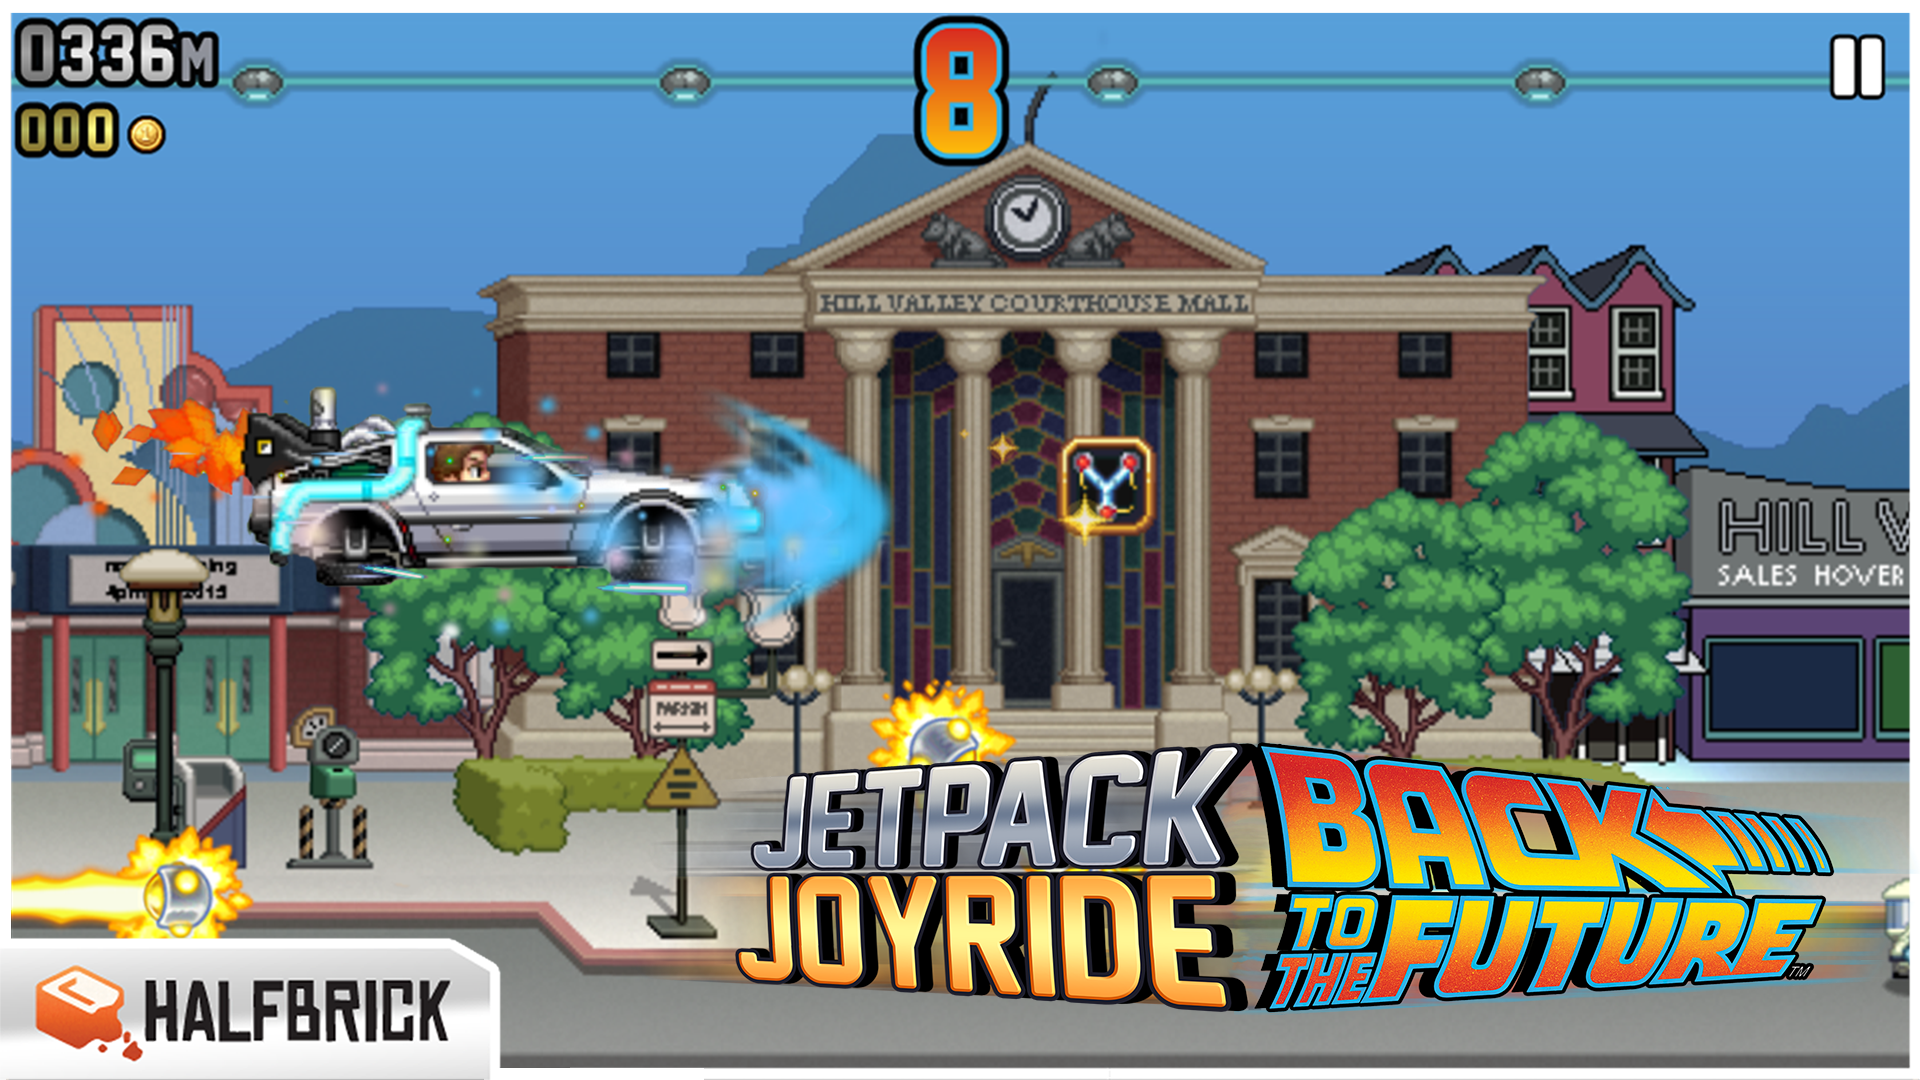 Jetpack Joyride hits 88 miles per hour with a Back to the Future-themed update